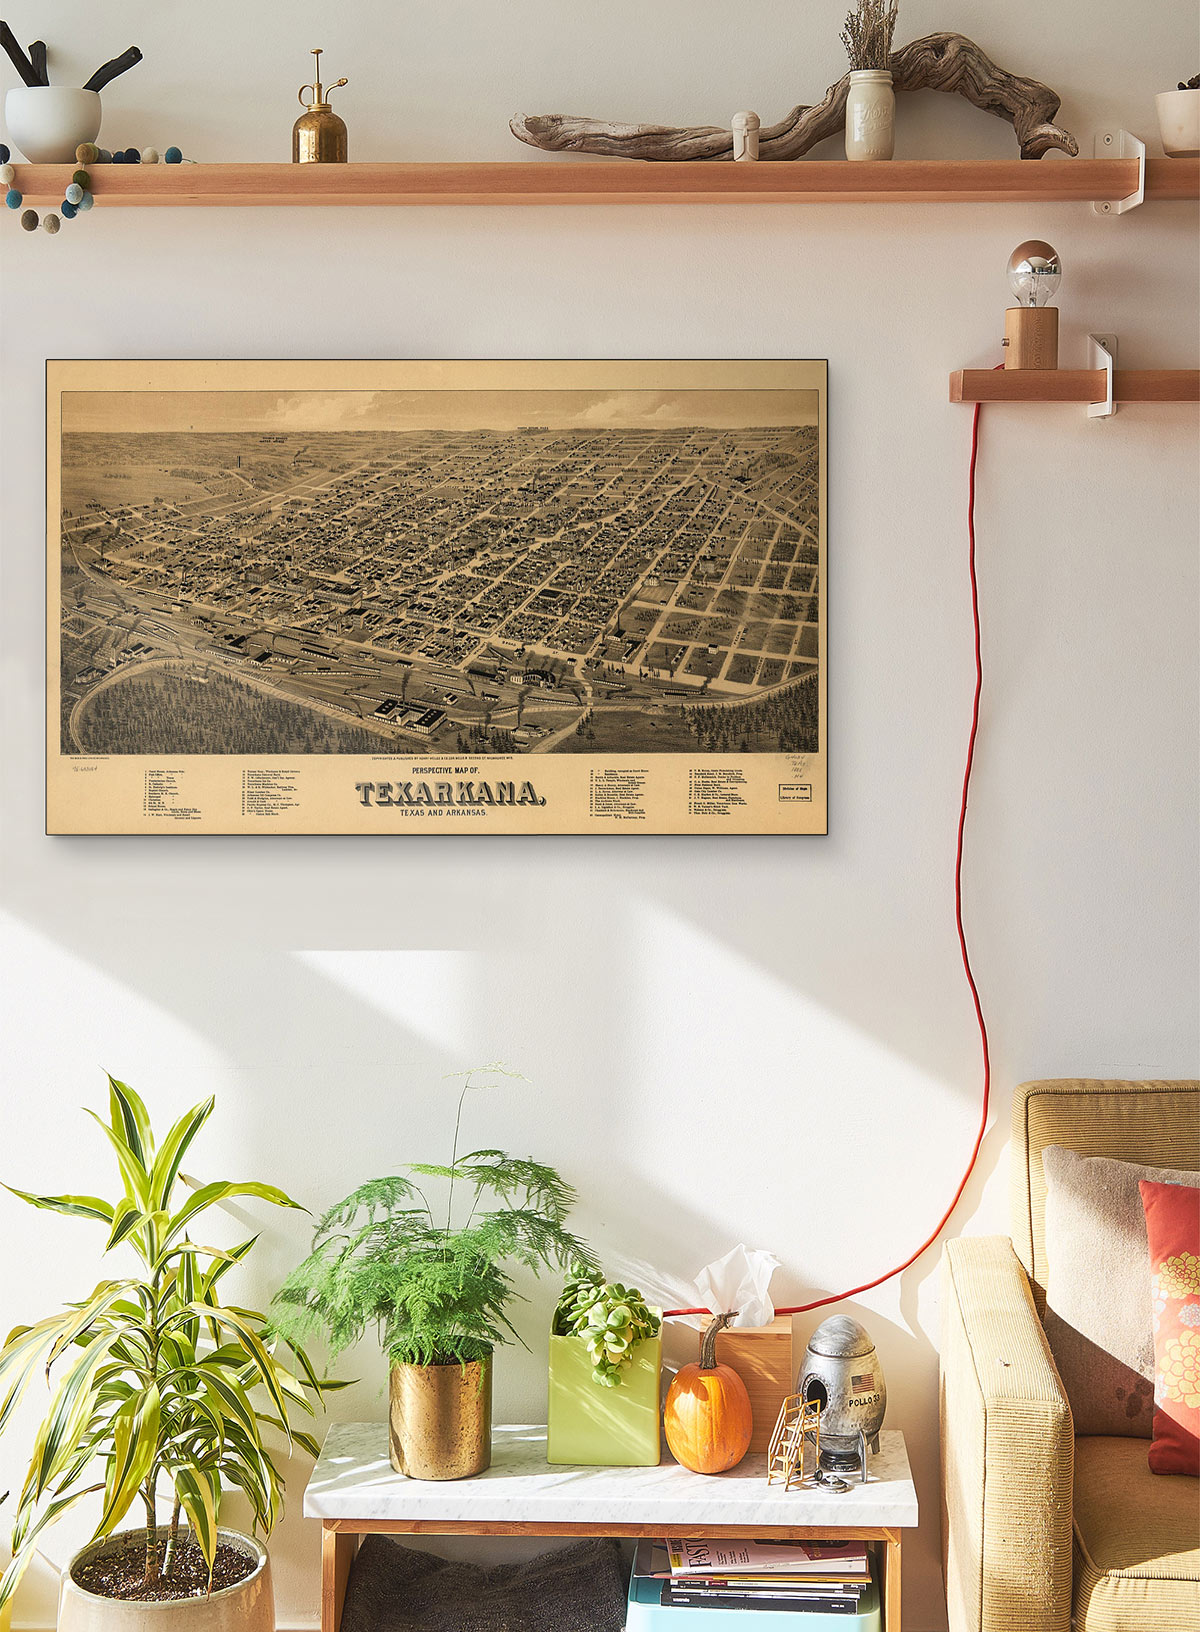 Perspective LARGE Vintage Map Of Texarkana Texas And Arkansas LARGE Vintage Map